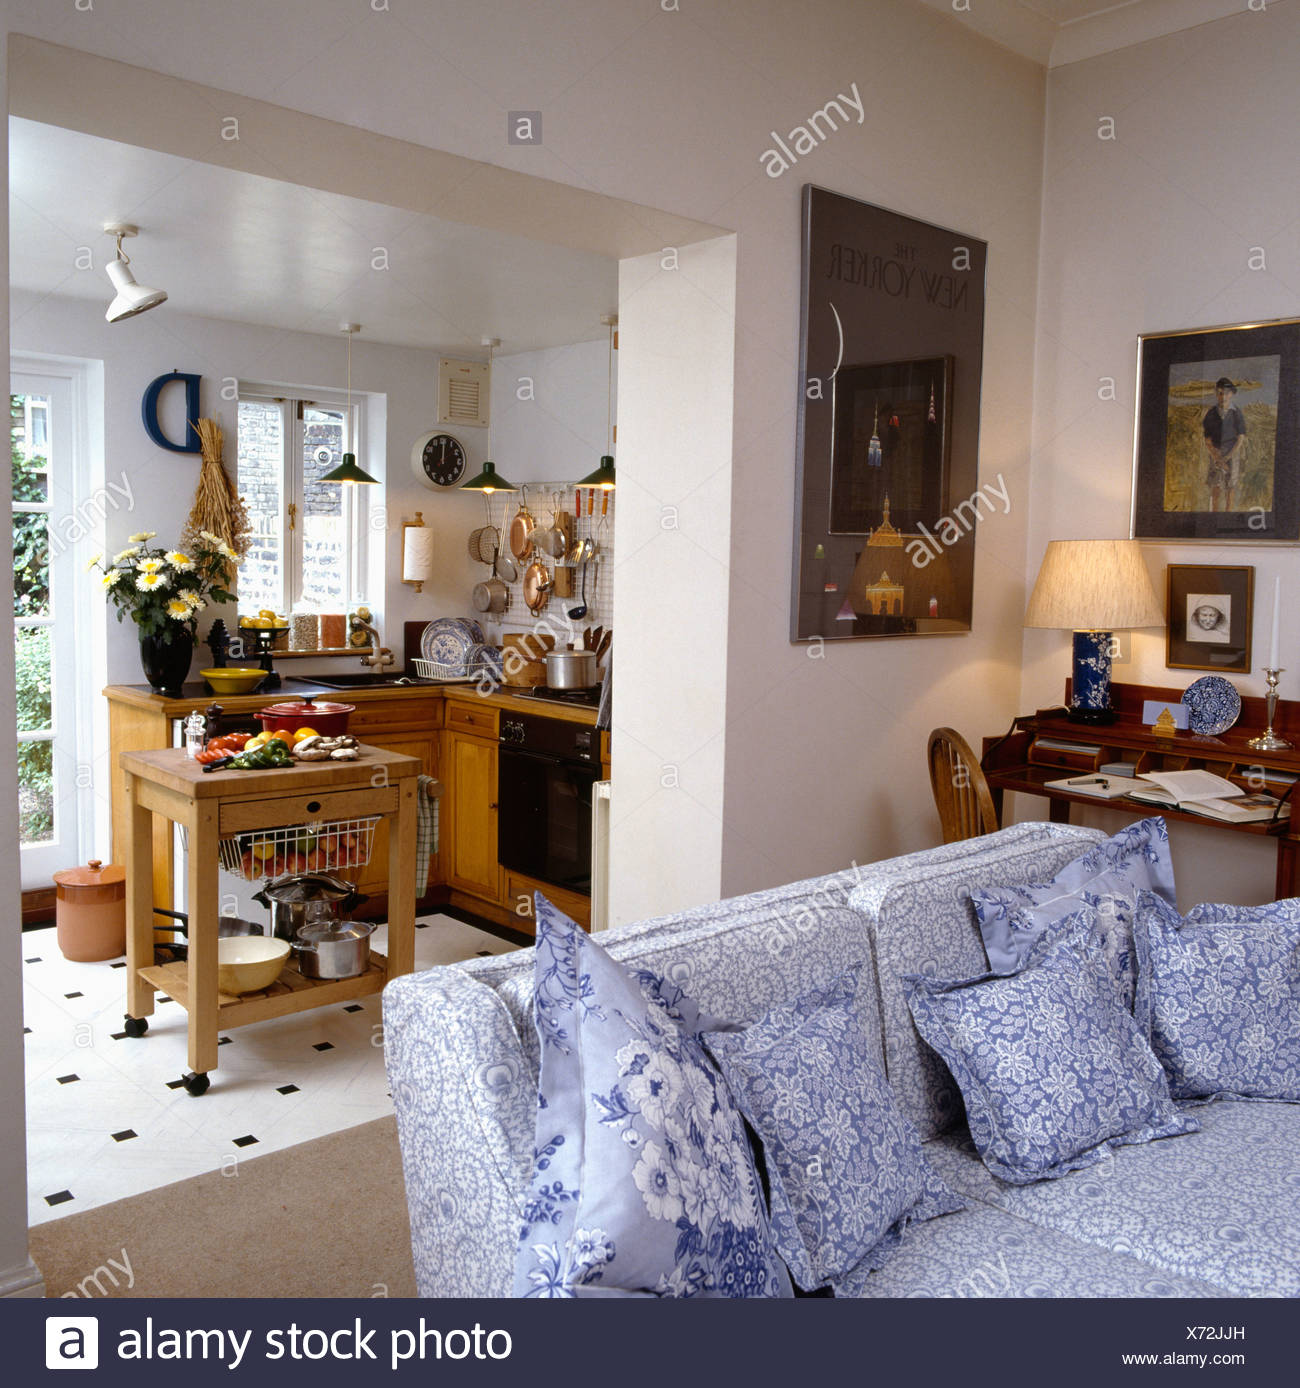 of picture settee new kitchen banquette room dining bench